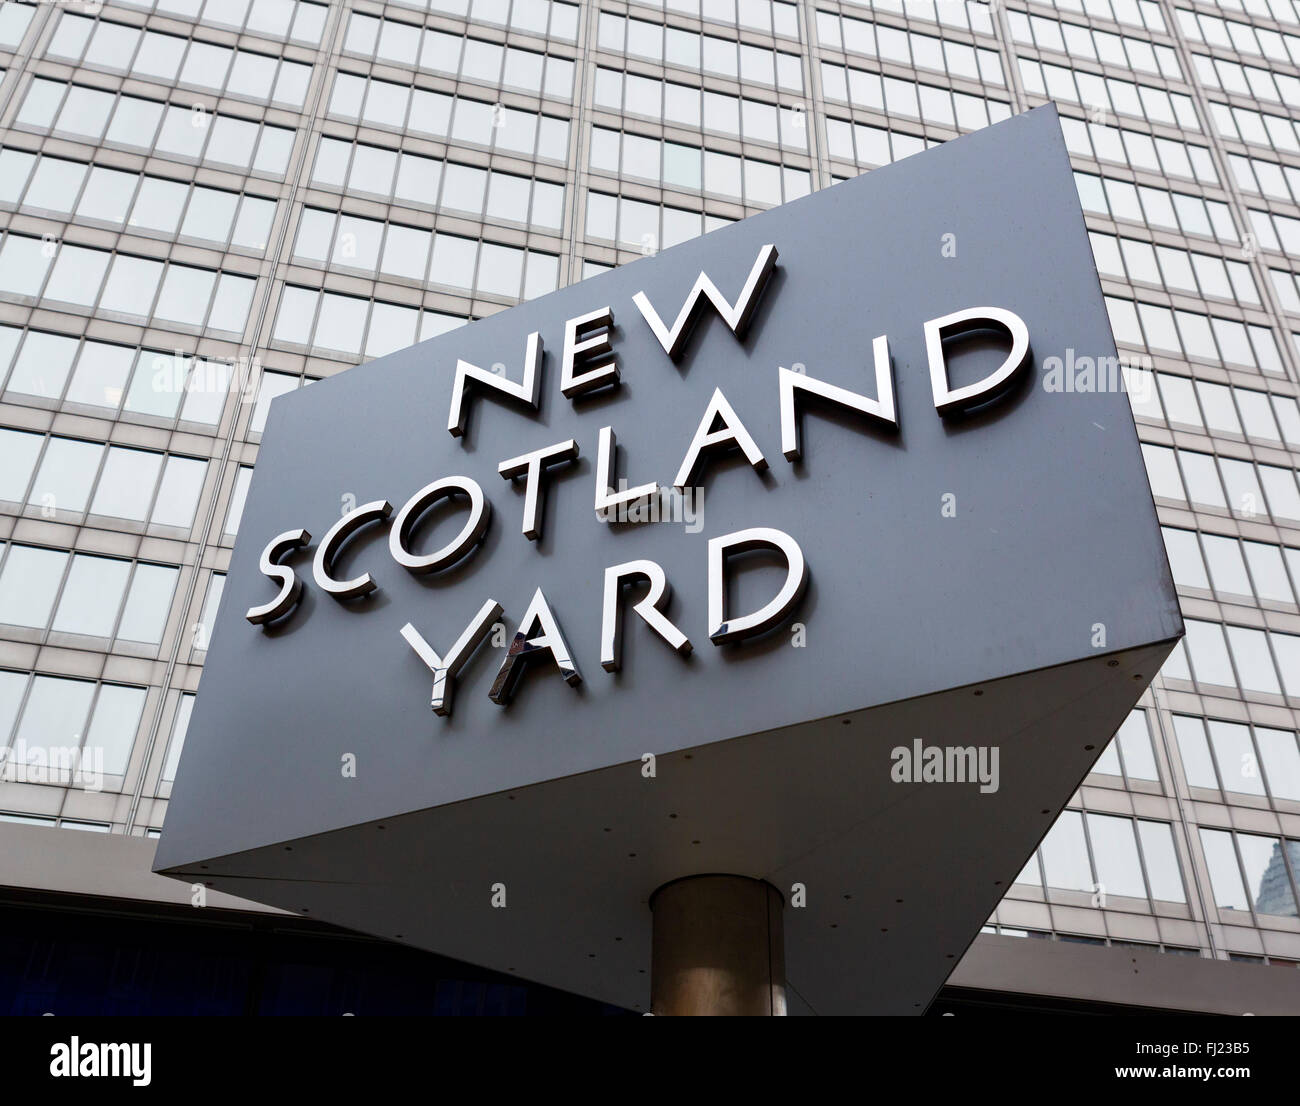 Sign outside the Metropolitan Police headquarters at New Scotland Yard, Broadway, Victoria, London, England, UK - Stock Image